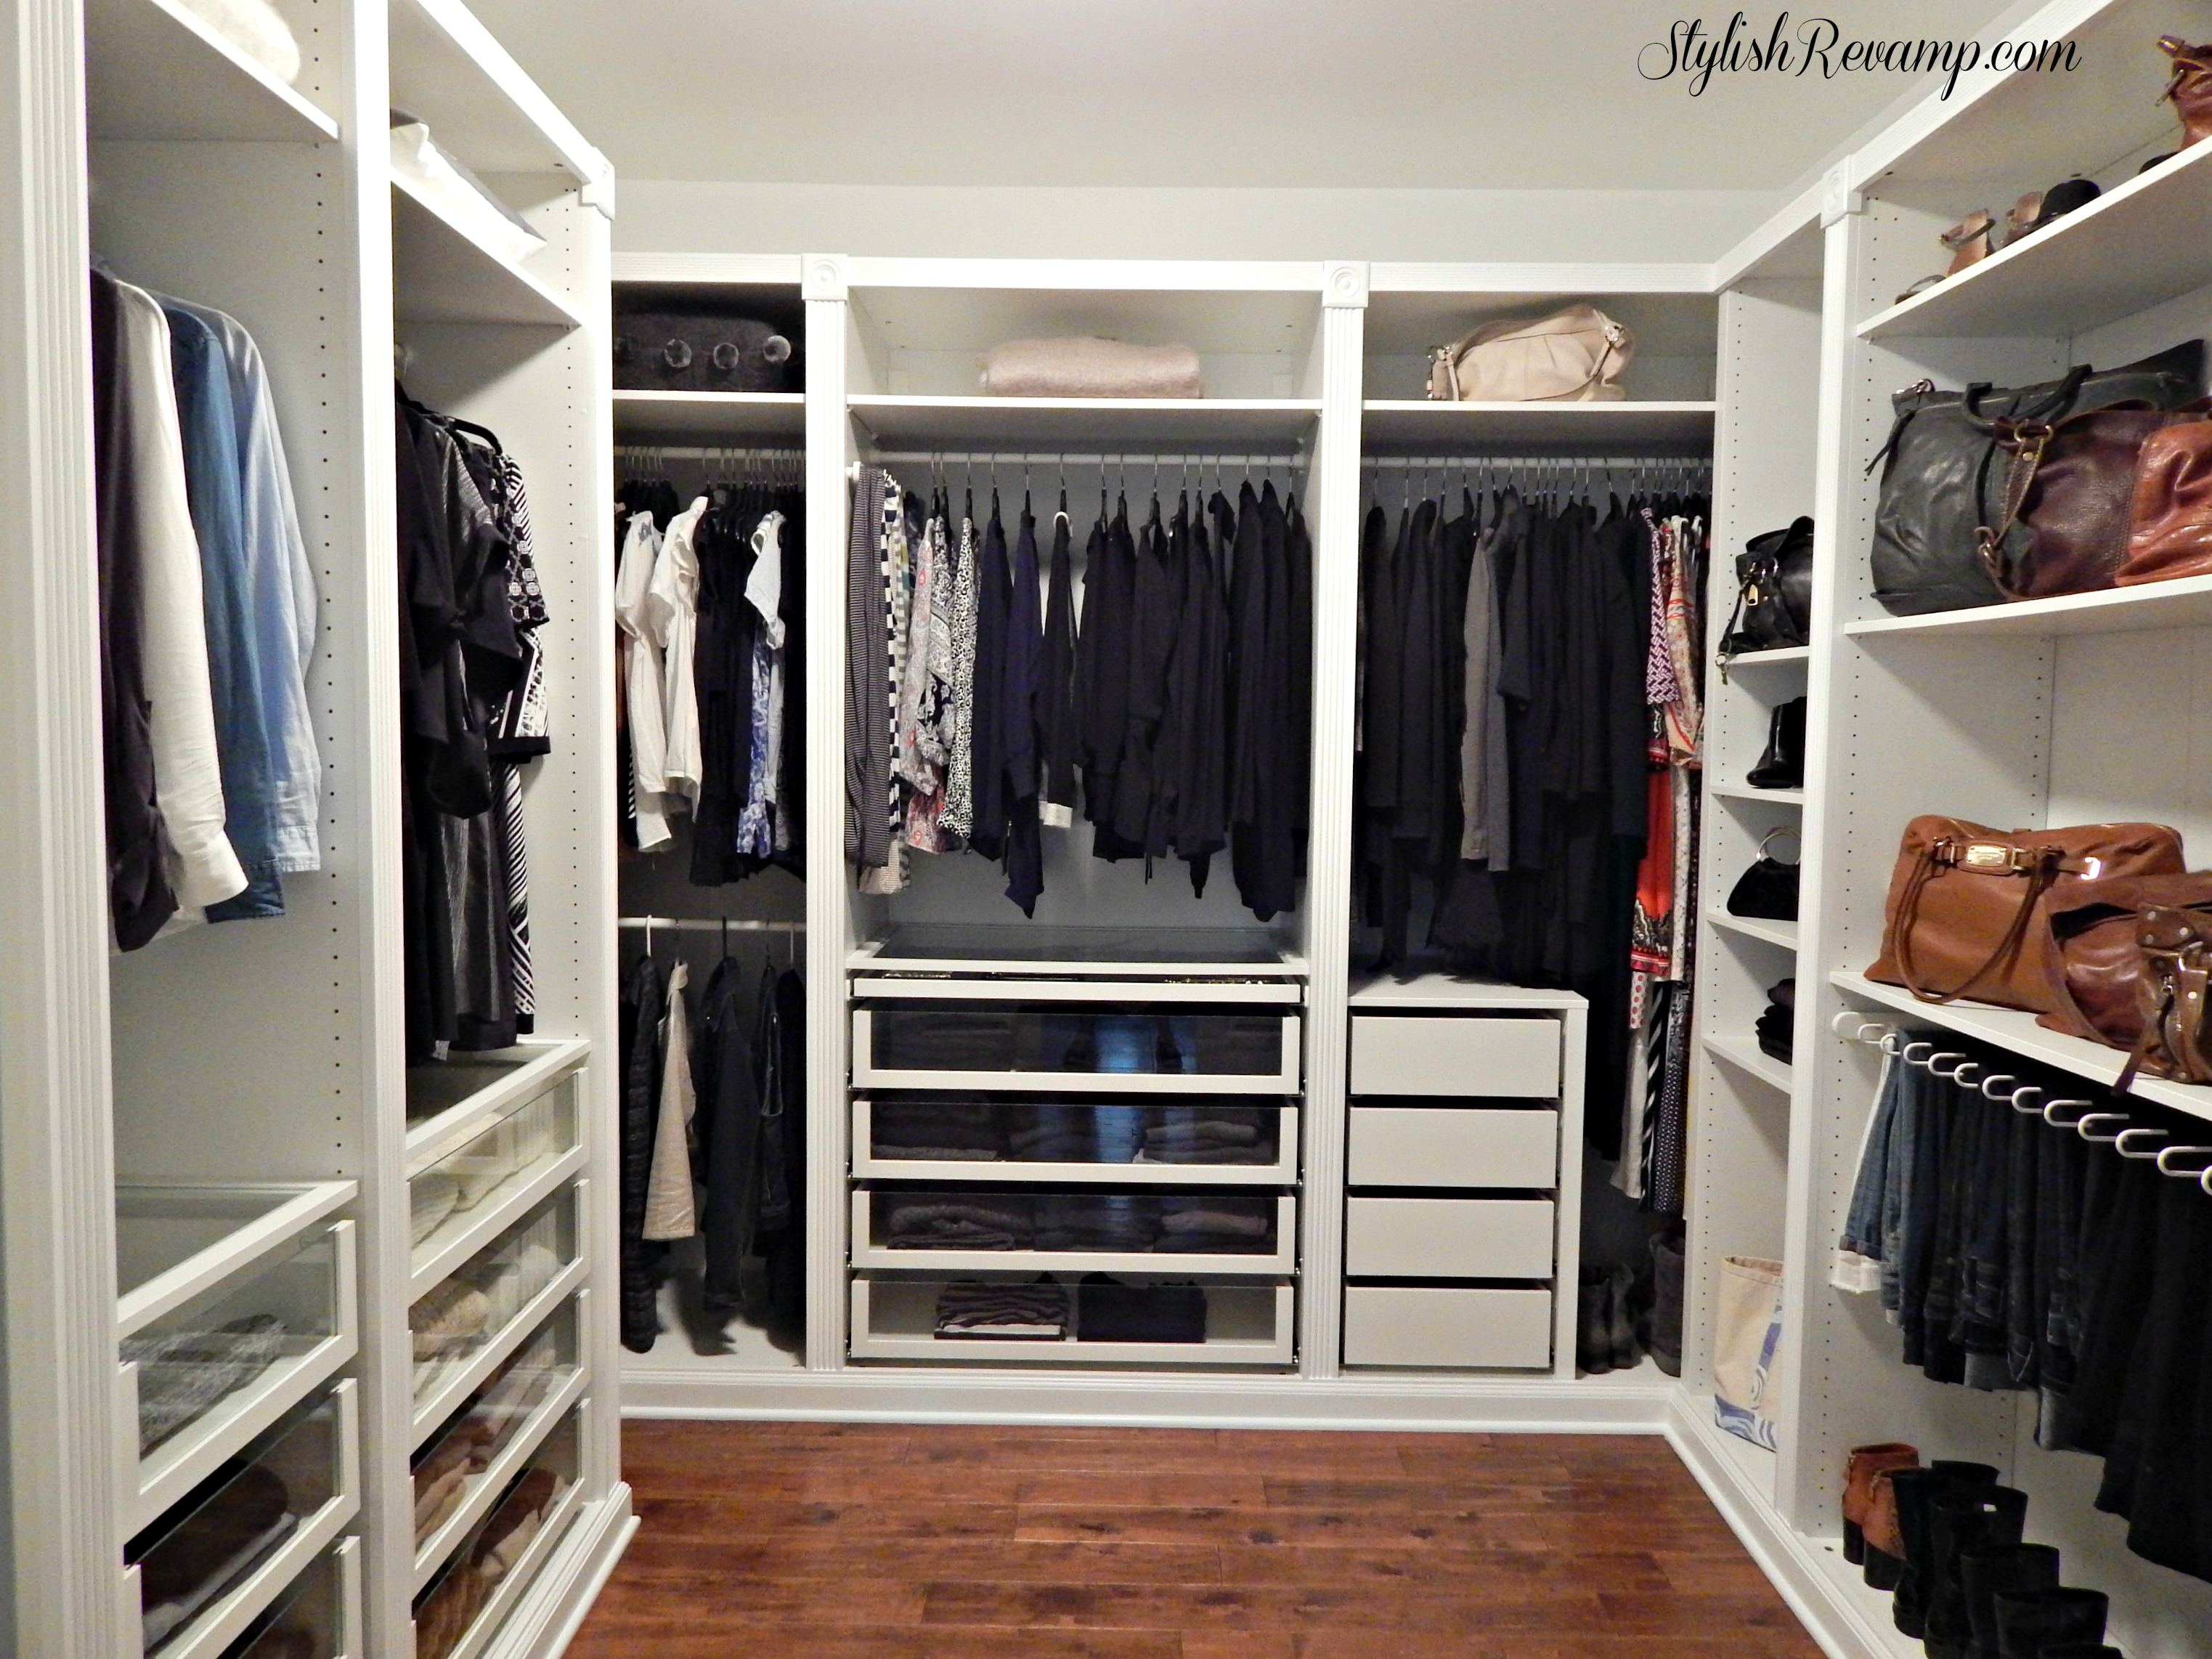 Ikea Pax System : revamping my closet with the ikea pax wardrobe stylish revamp ~ Buech-reservation.com Haus und Dekorationen